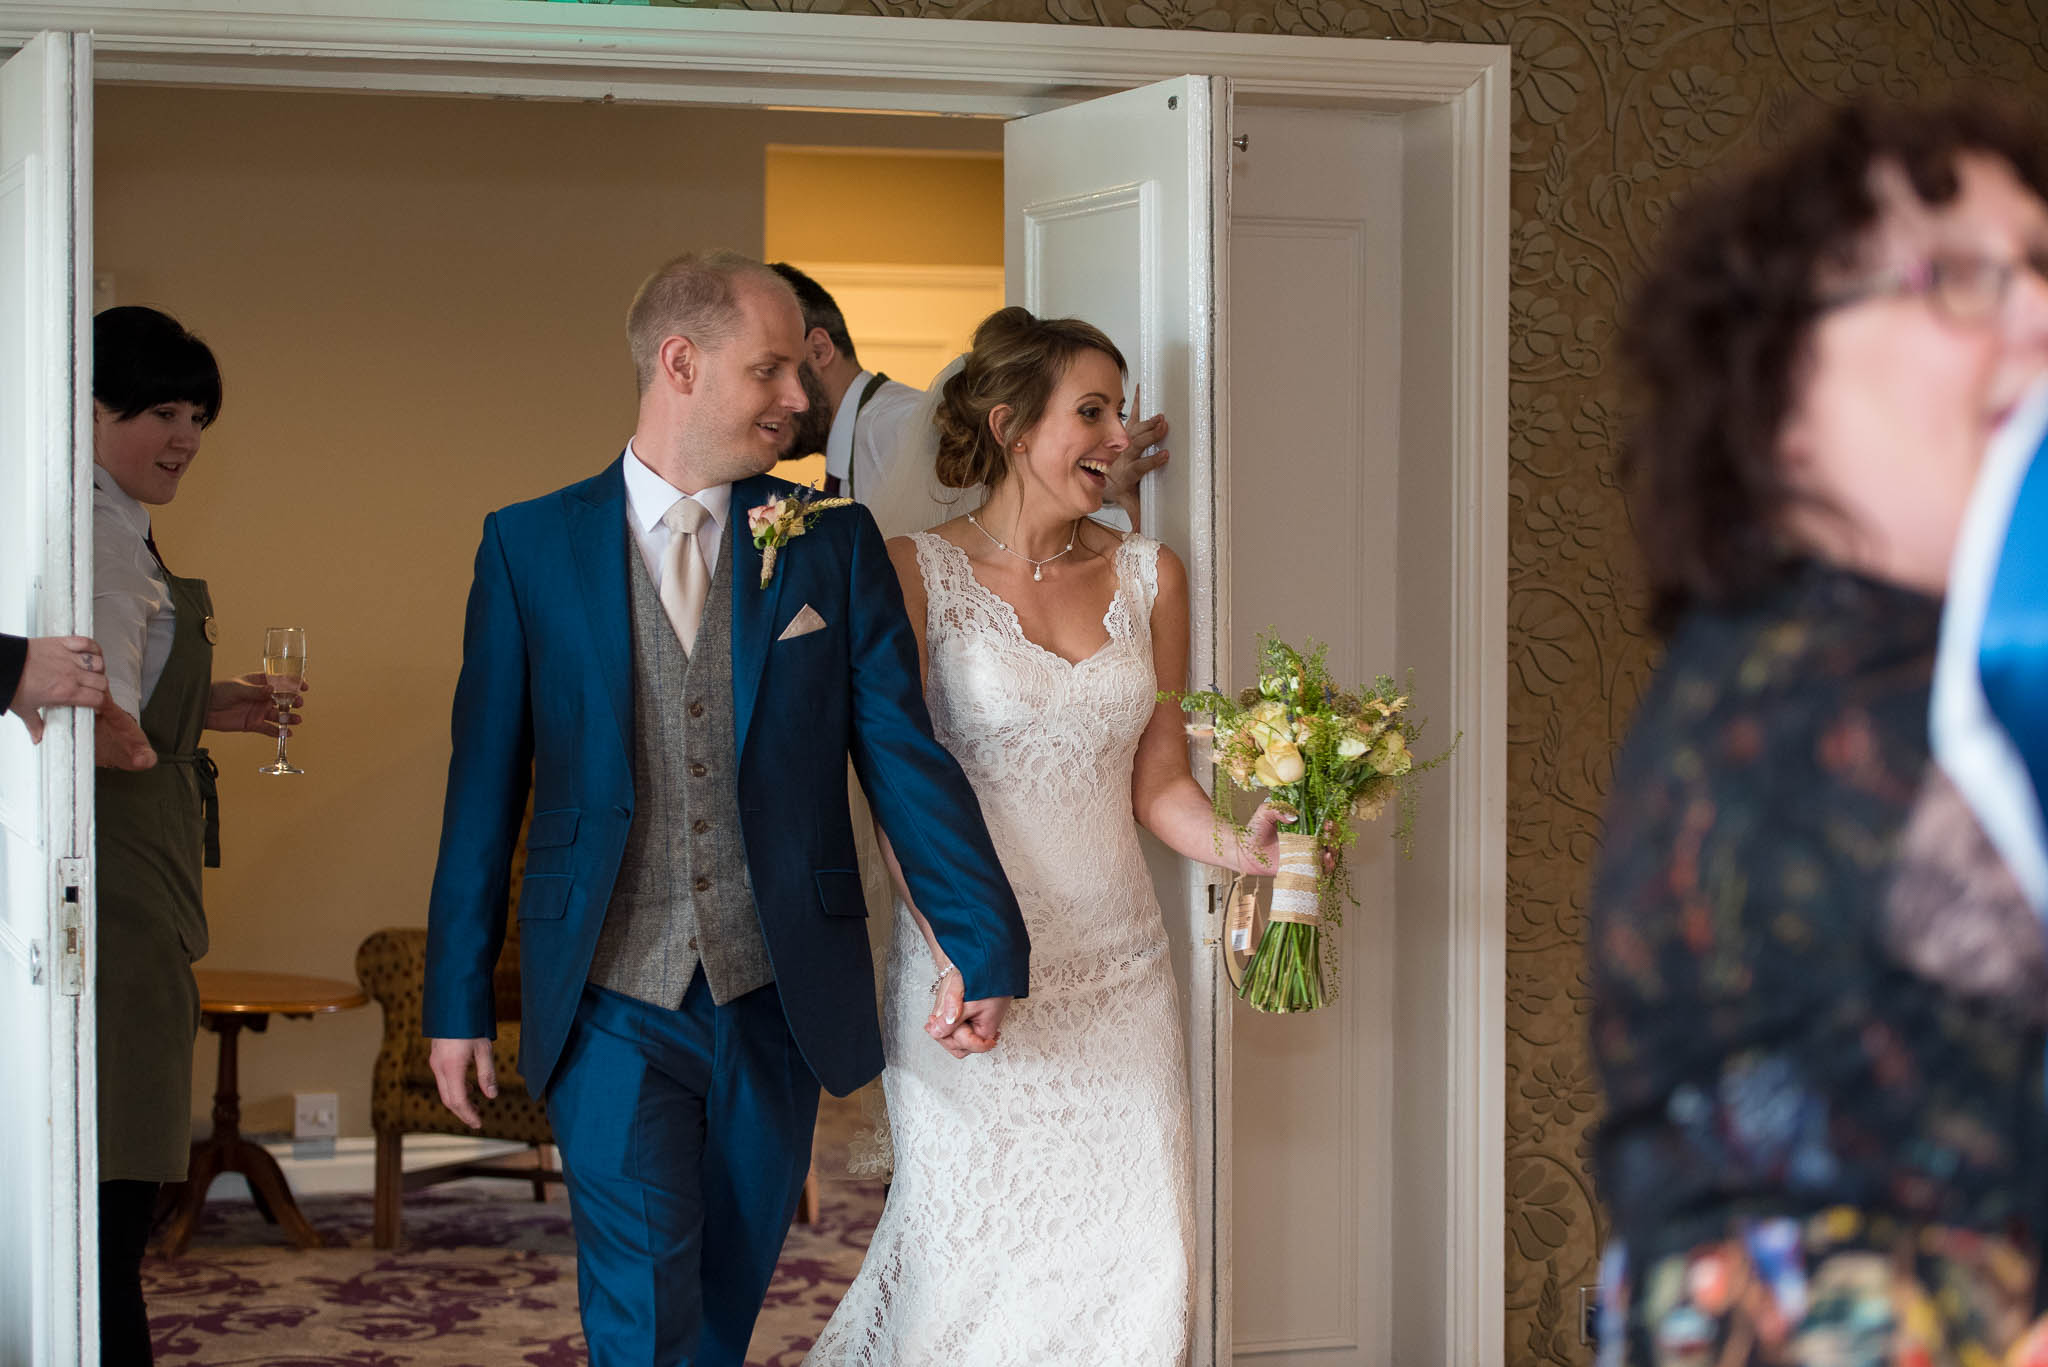 The Bridge Inn Wedding - Walshford, Wetherby 54.jpg